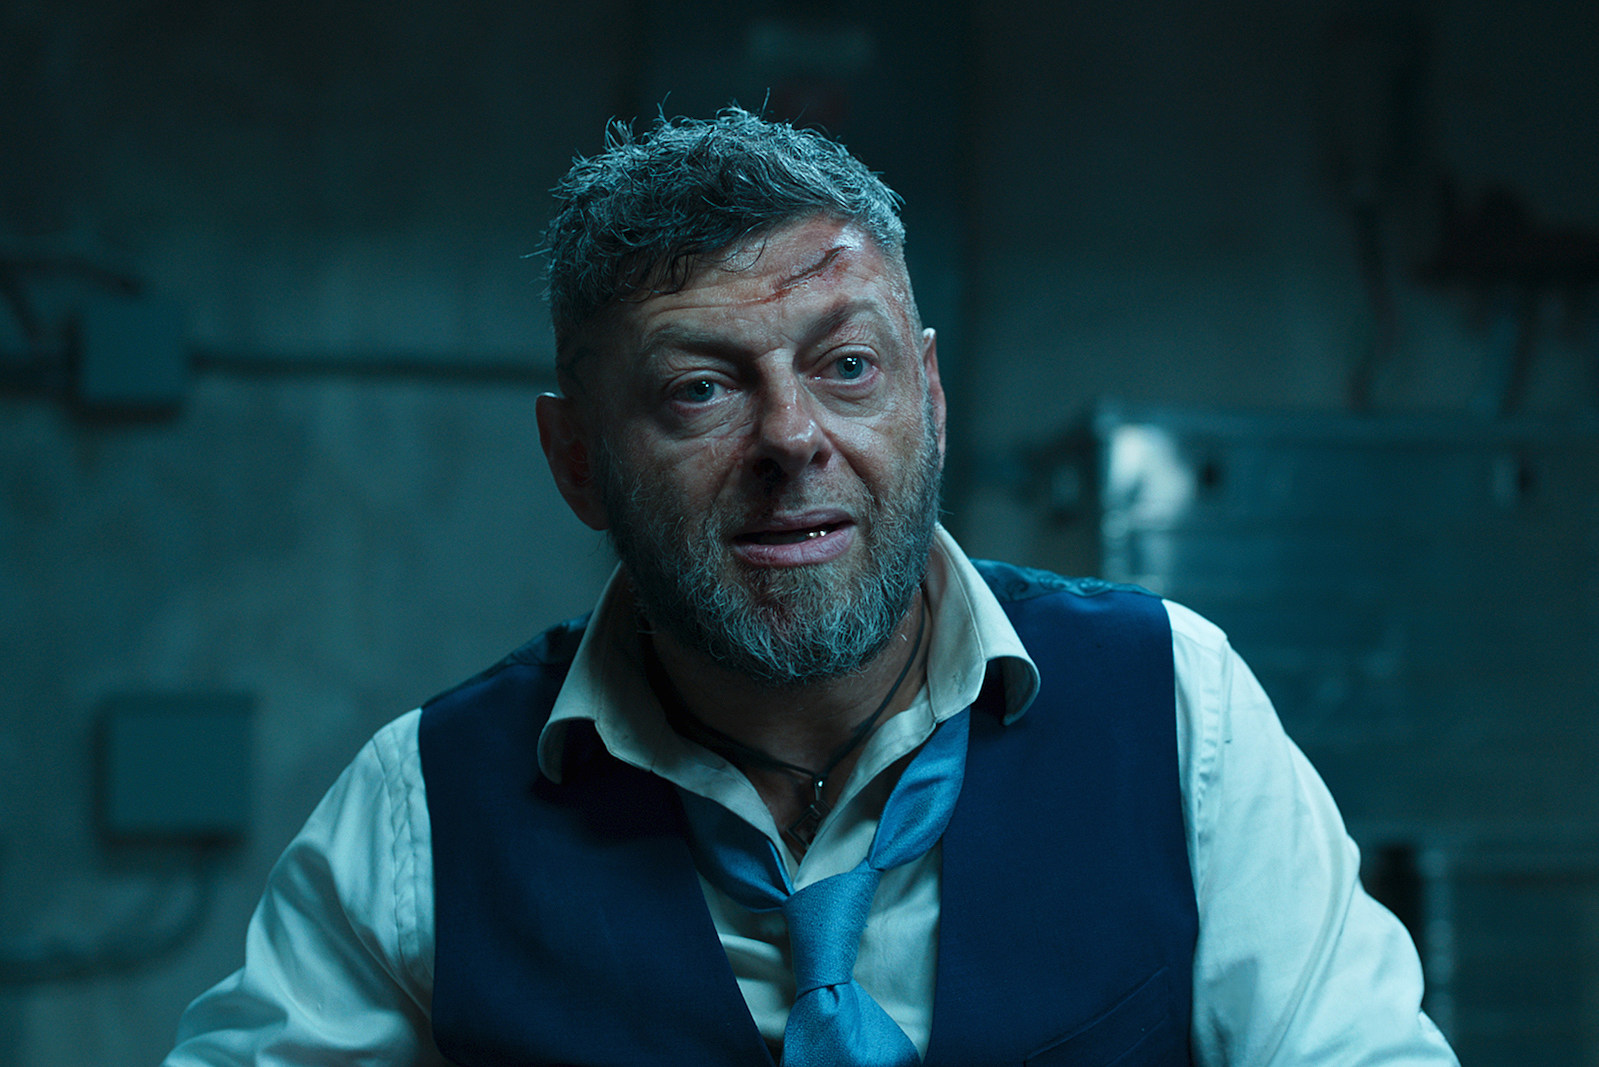 Andy Serkis on Whether He'll Return for the 'LOTR' TV Series